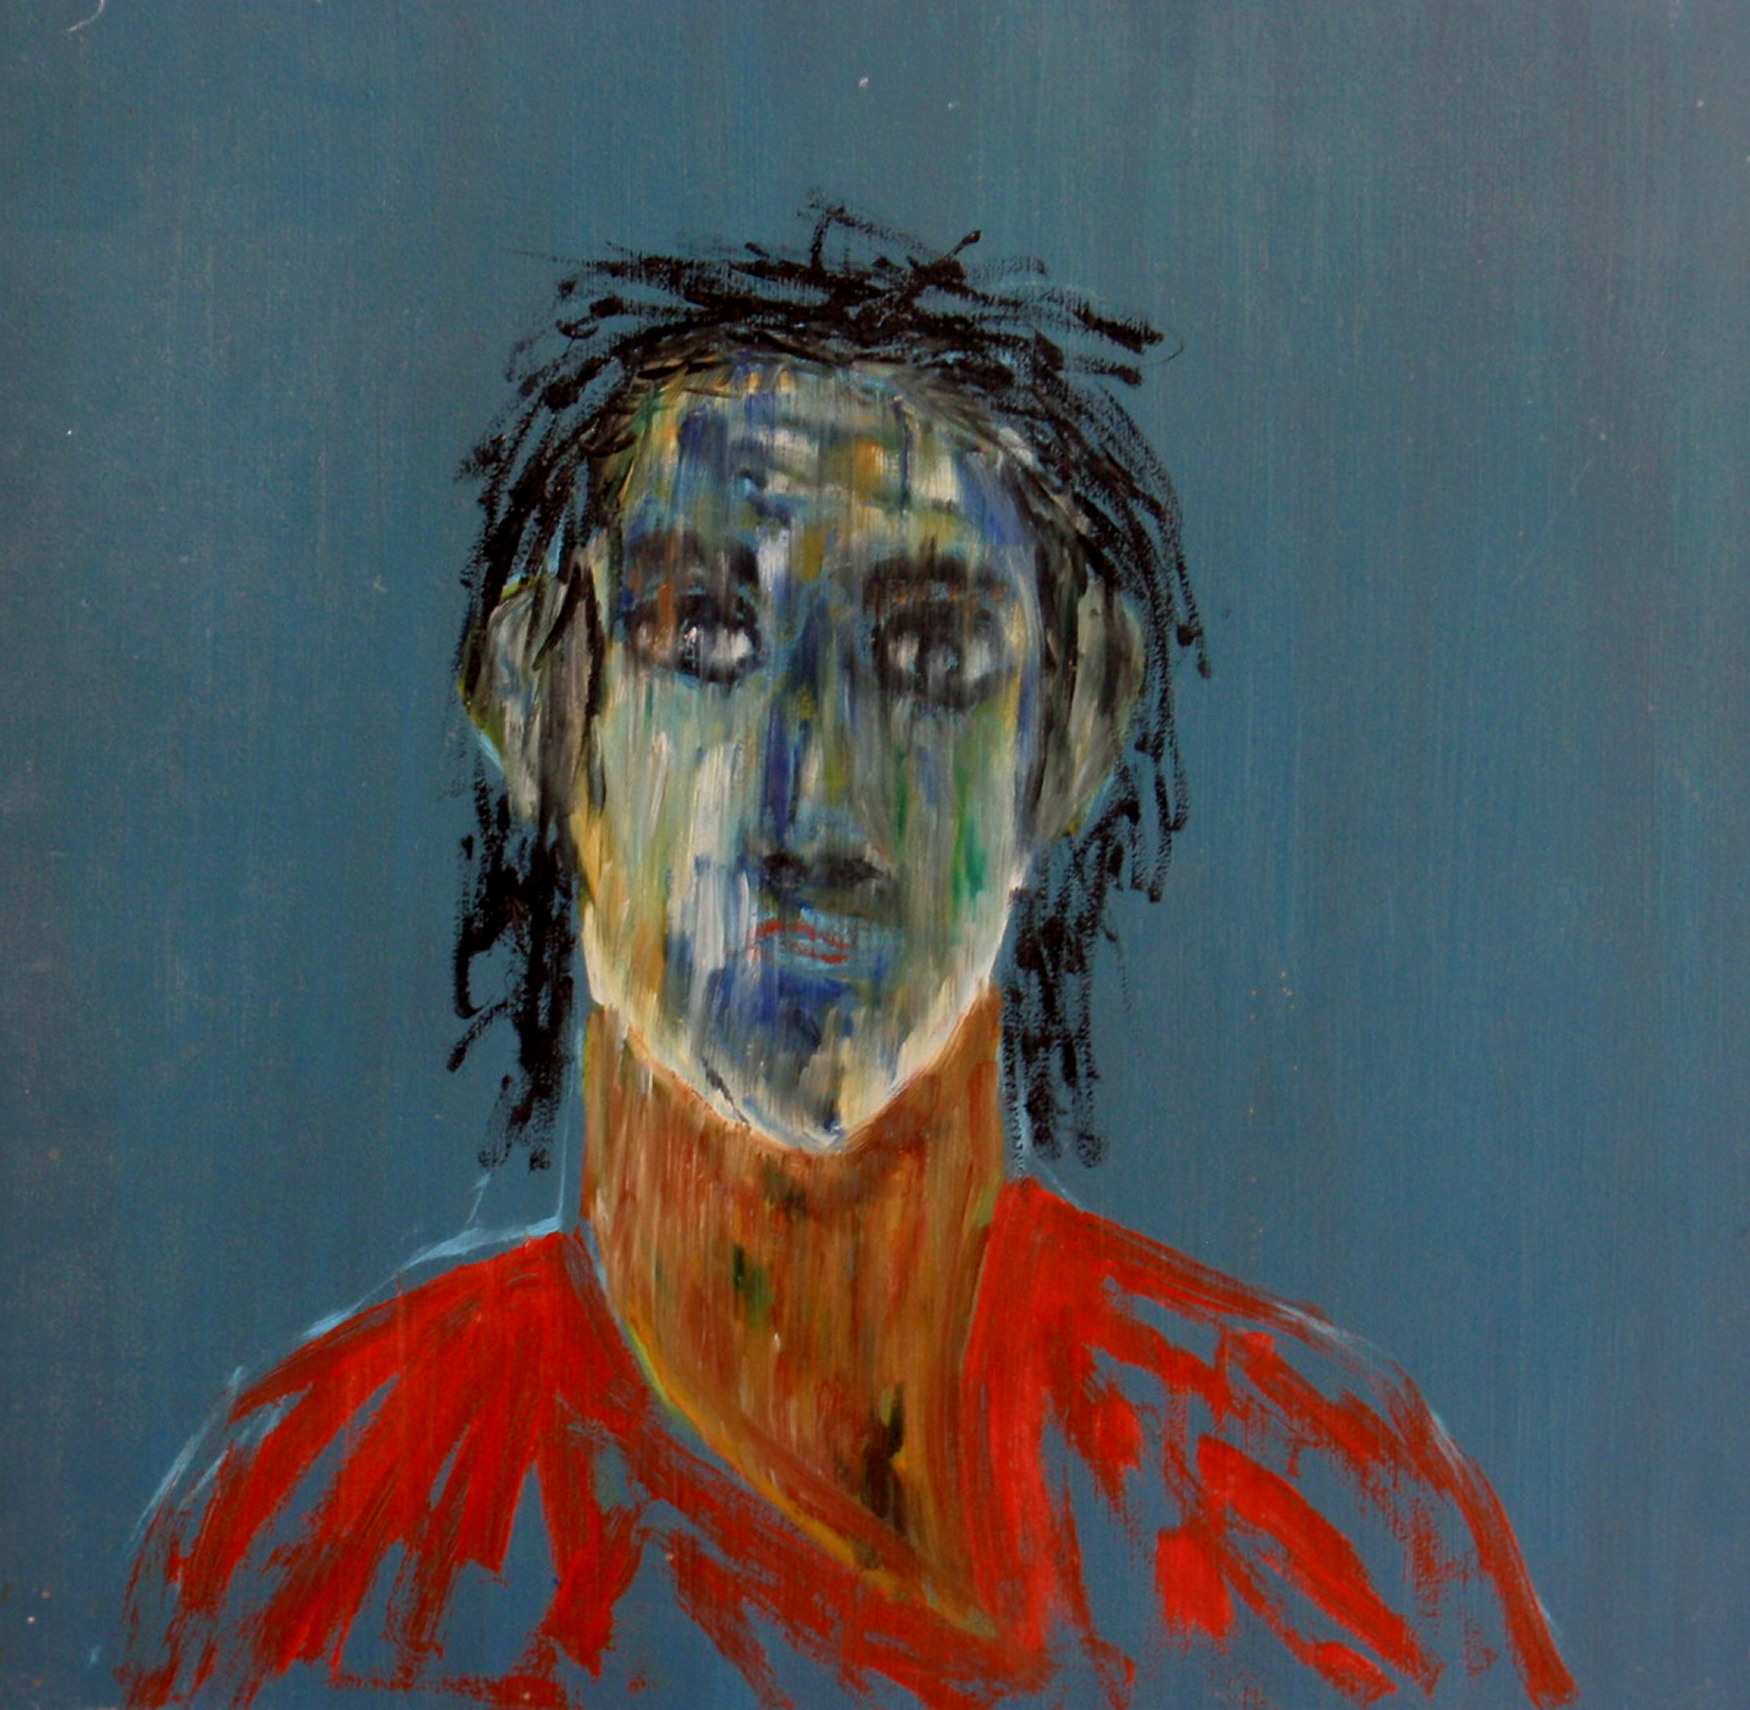 1986. Adam. Oil on panel. 40x40 cm.